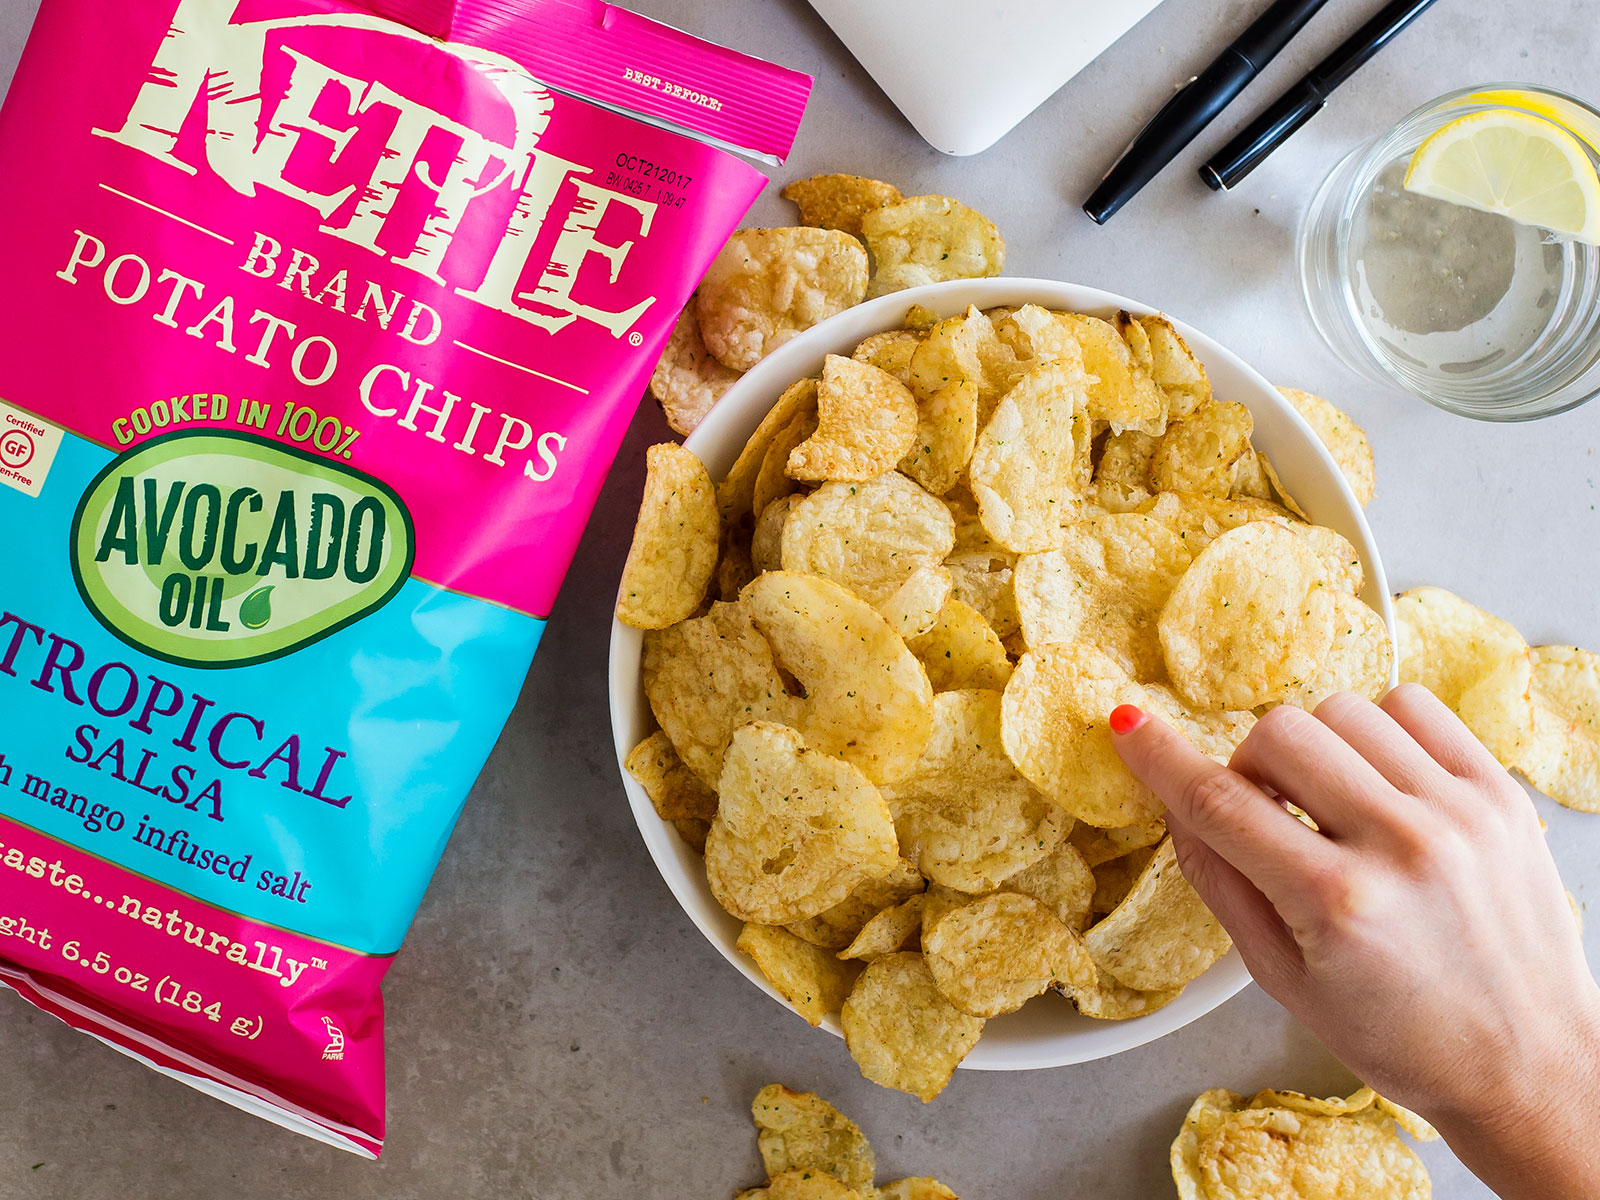 kettle krinkle cut chips avocado salsa